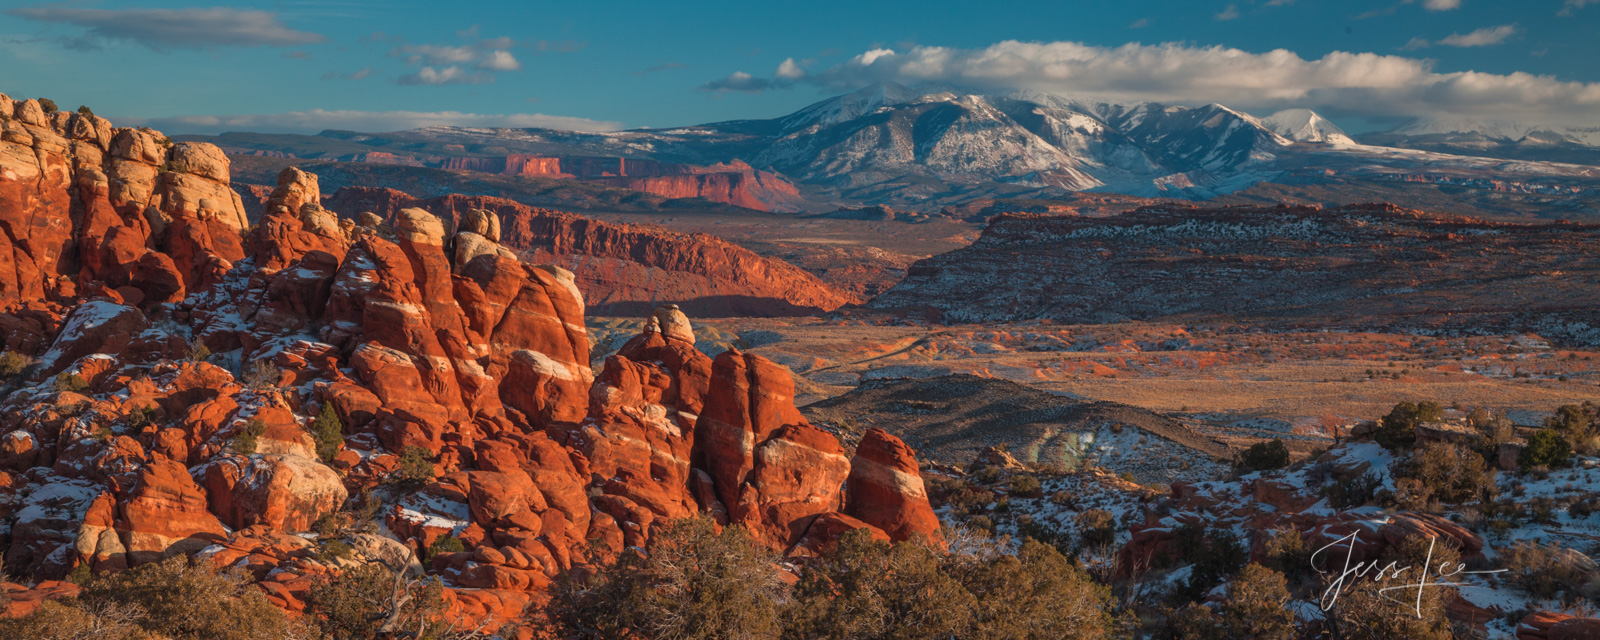 FINE ART LIMITED EDITION  PHOTO PRINT OF THE BLUFFS IN ARCHES NATIONAL PARK Arches Bluffs Landscape photo print of Utah Landscape...